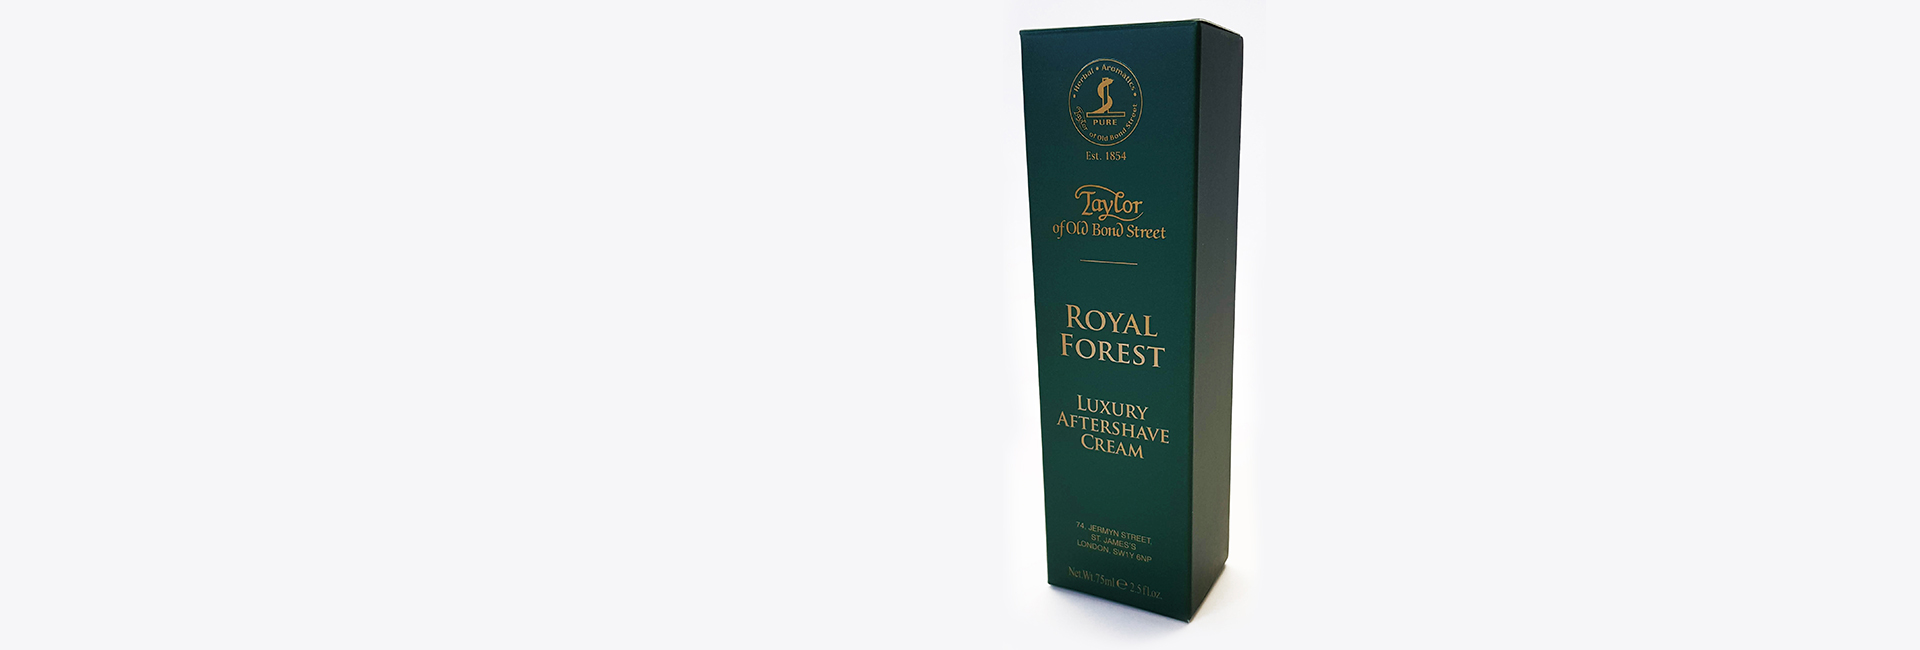 Taylors Royal Forest